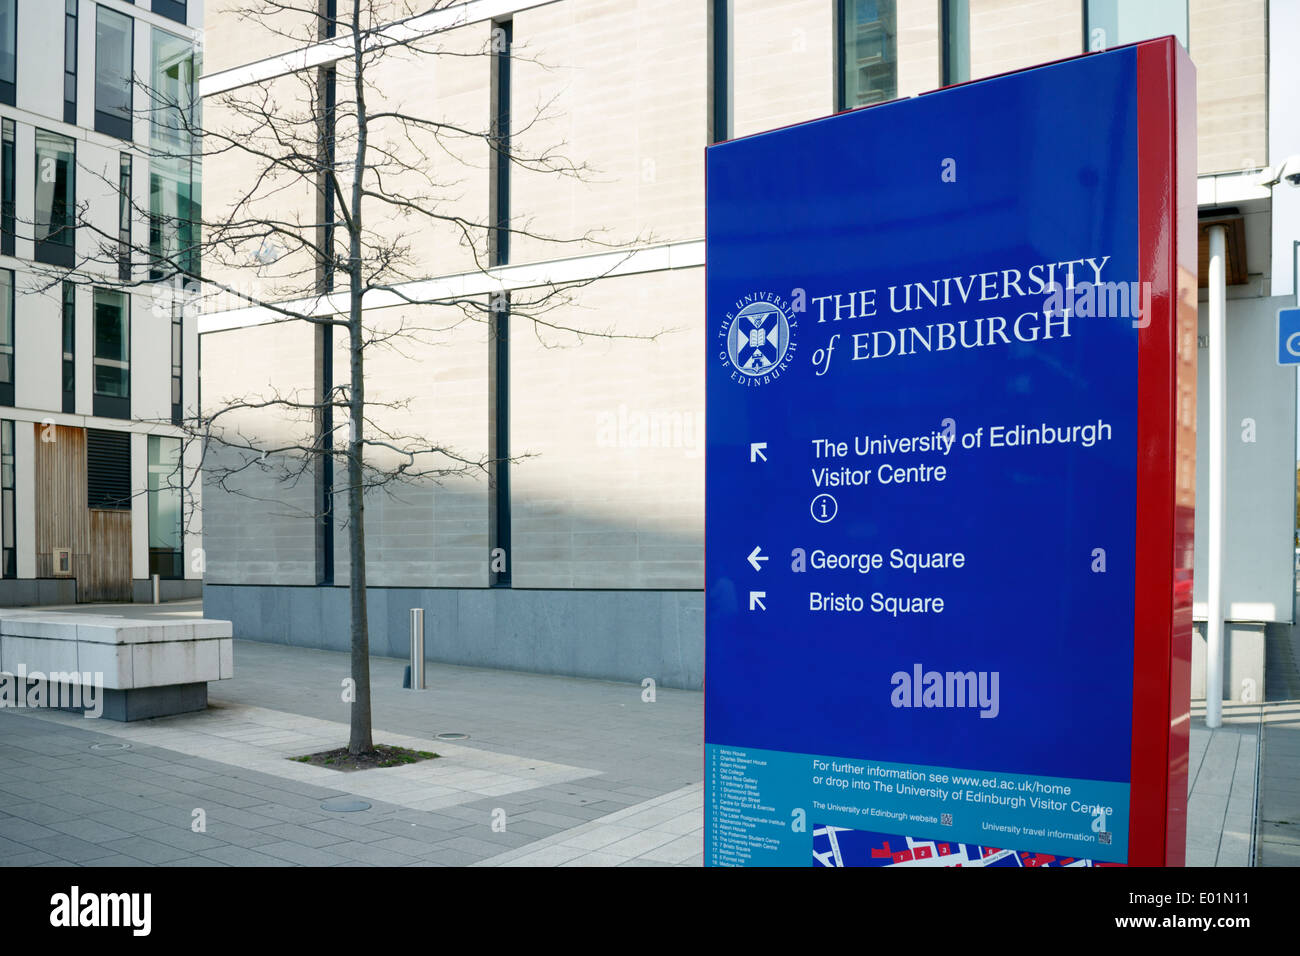 University of Edinburgh sign with the University buildings in the background. - Stock Image